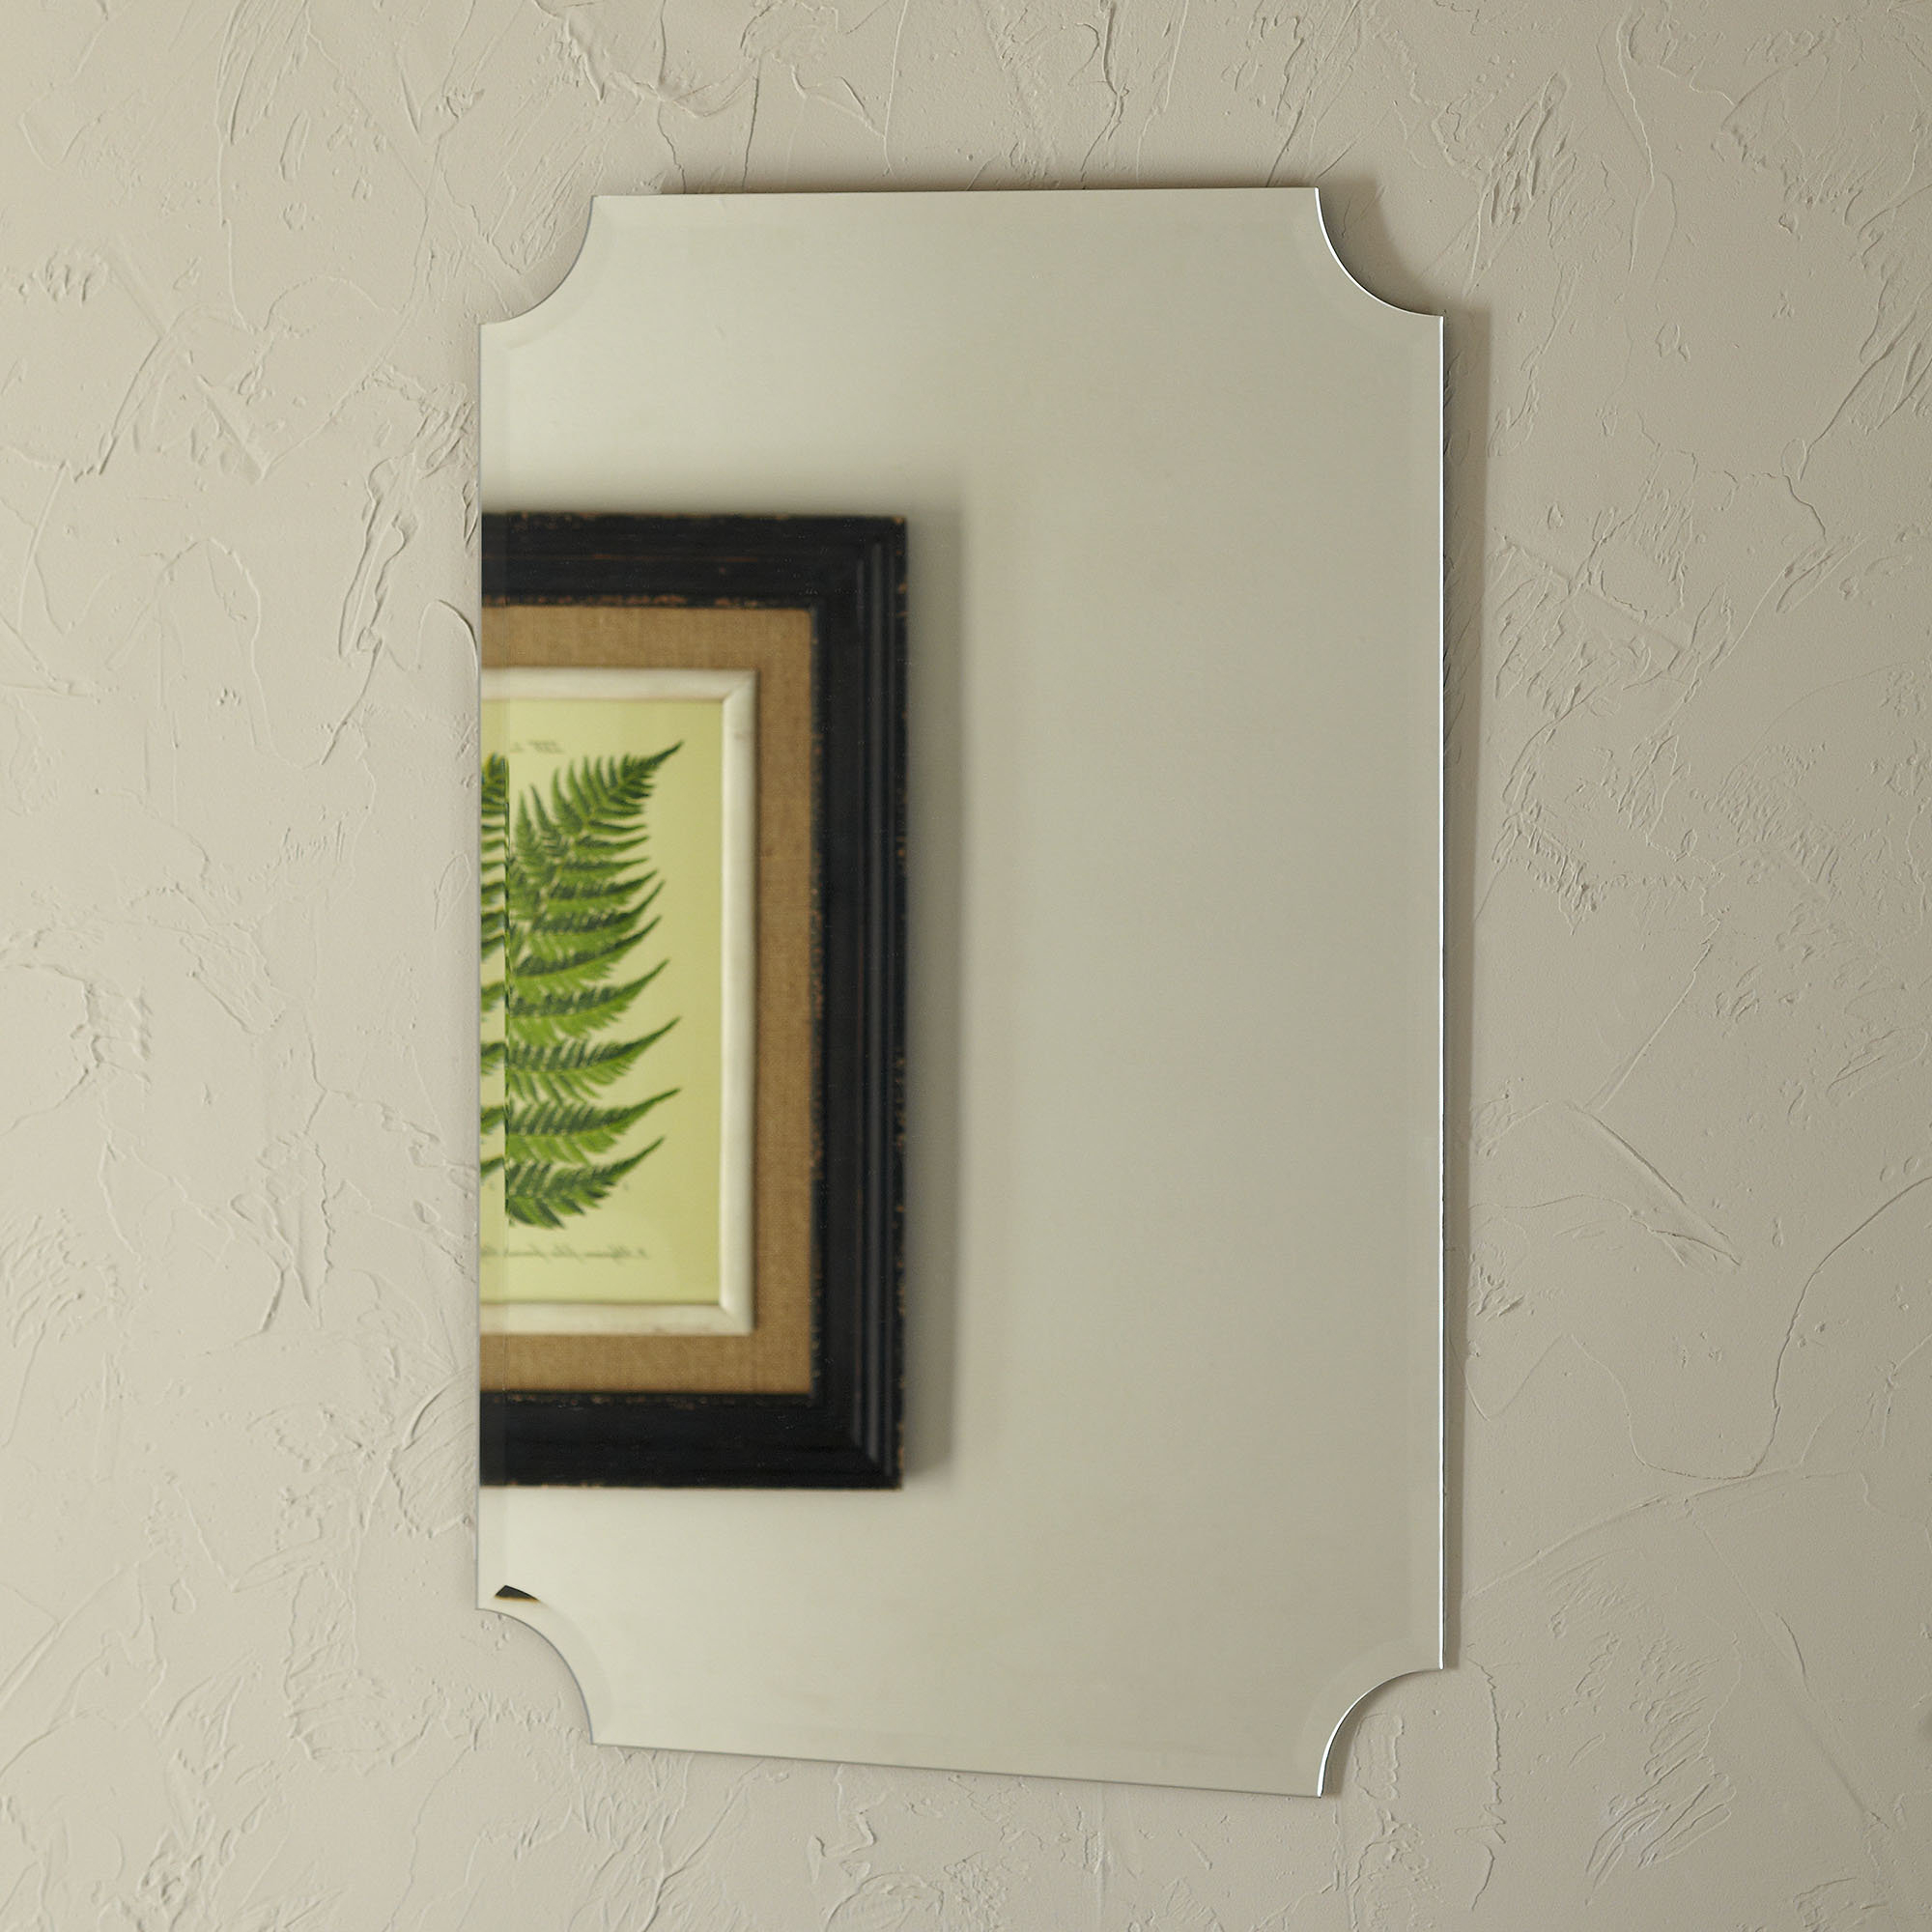 Guilherme Modern & Contemporary Accent Mirror Intended For Guidinha Modern & Contemporary Accent Mirrors (View 8 of 30)